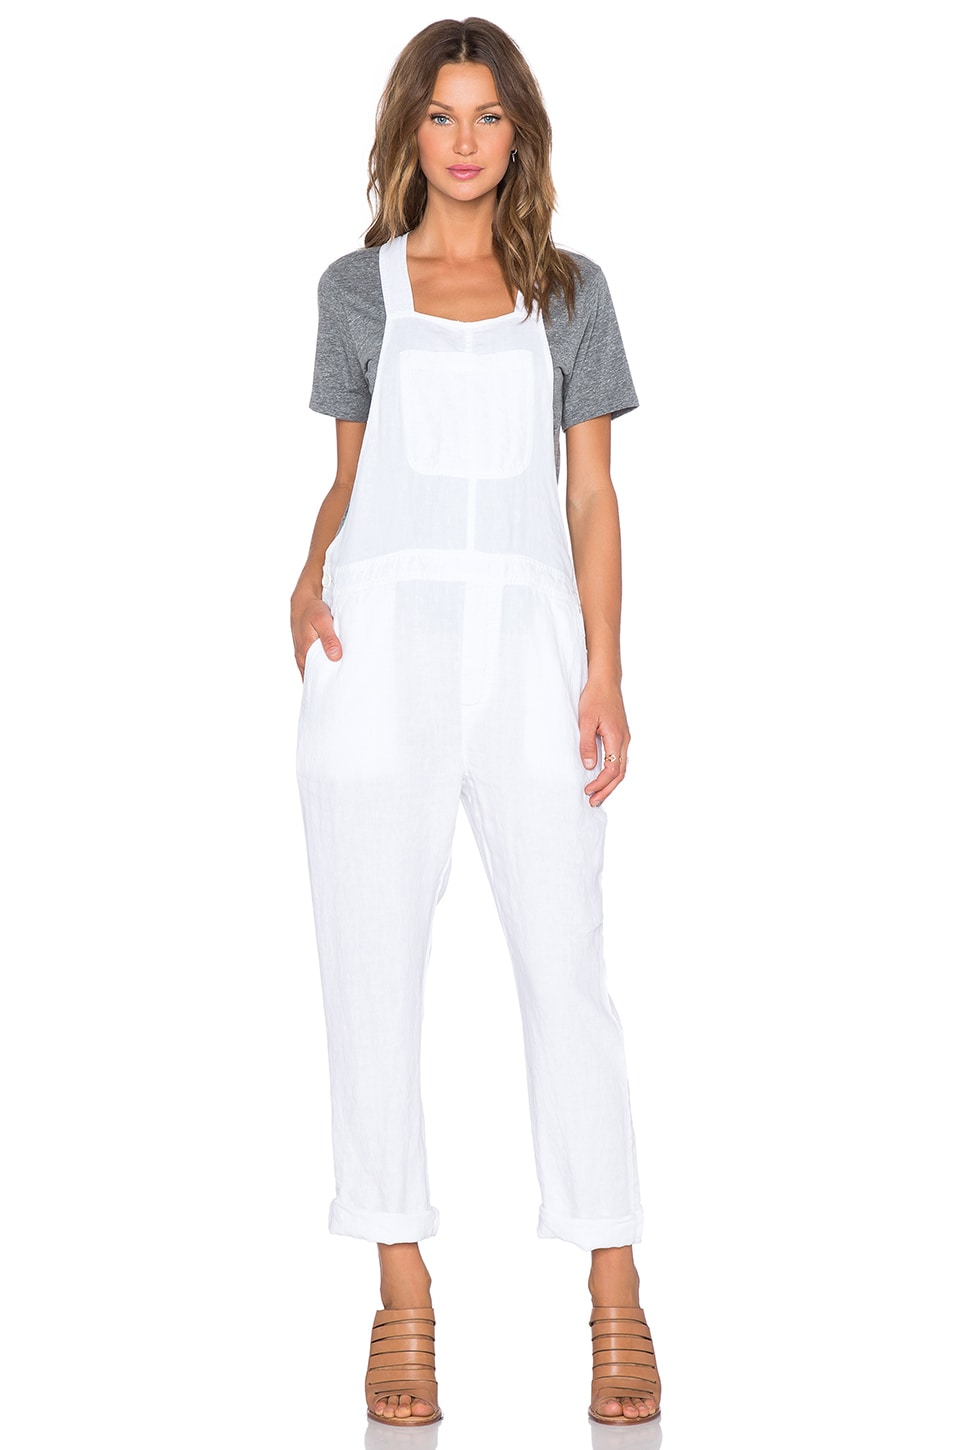 James Perse Linen Overalls in White